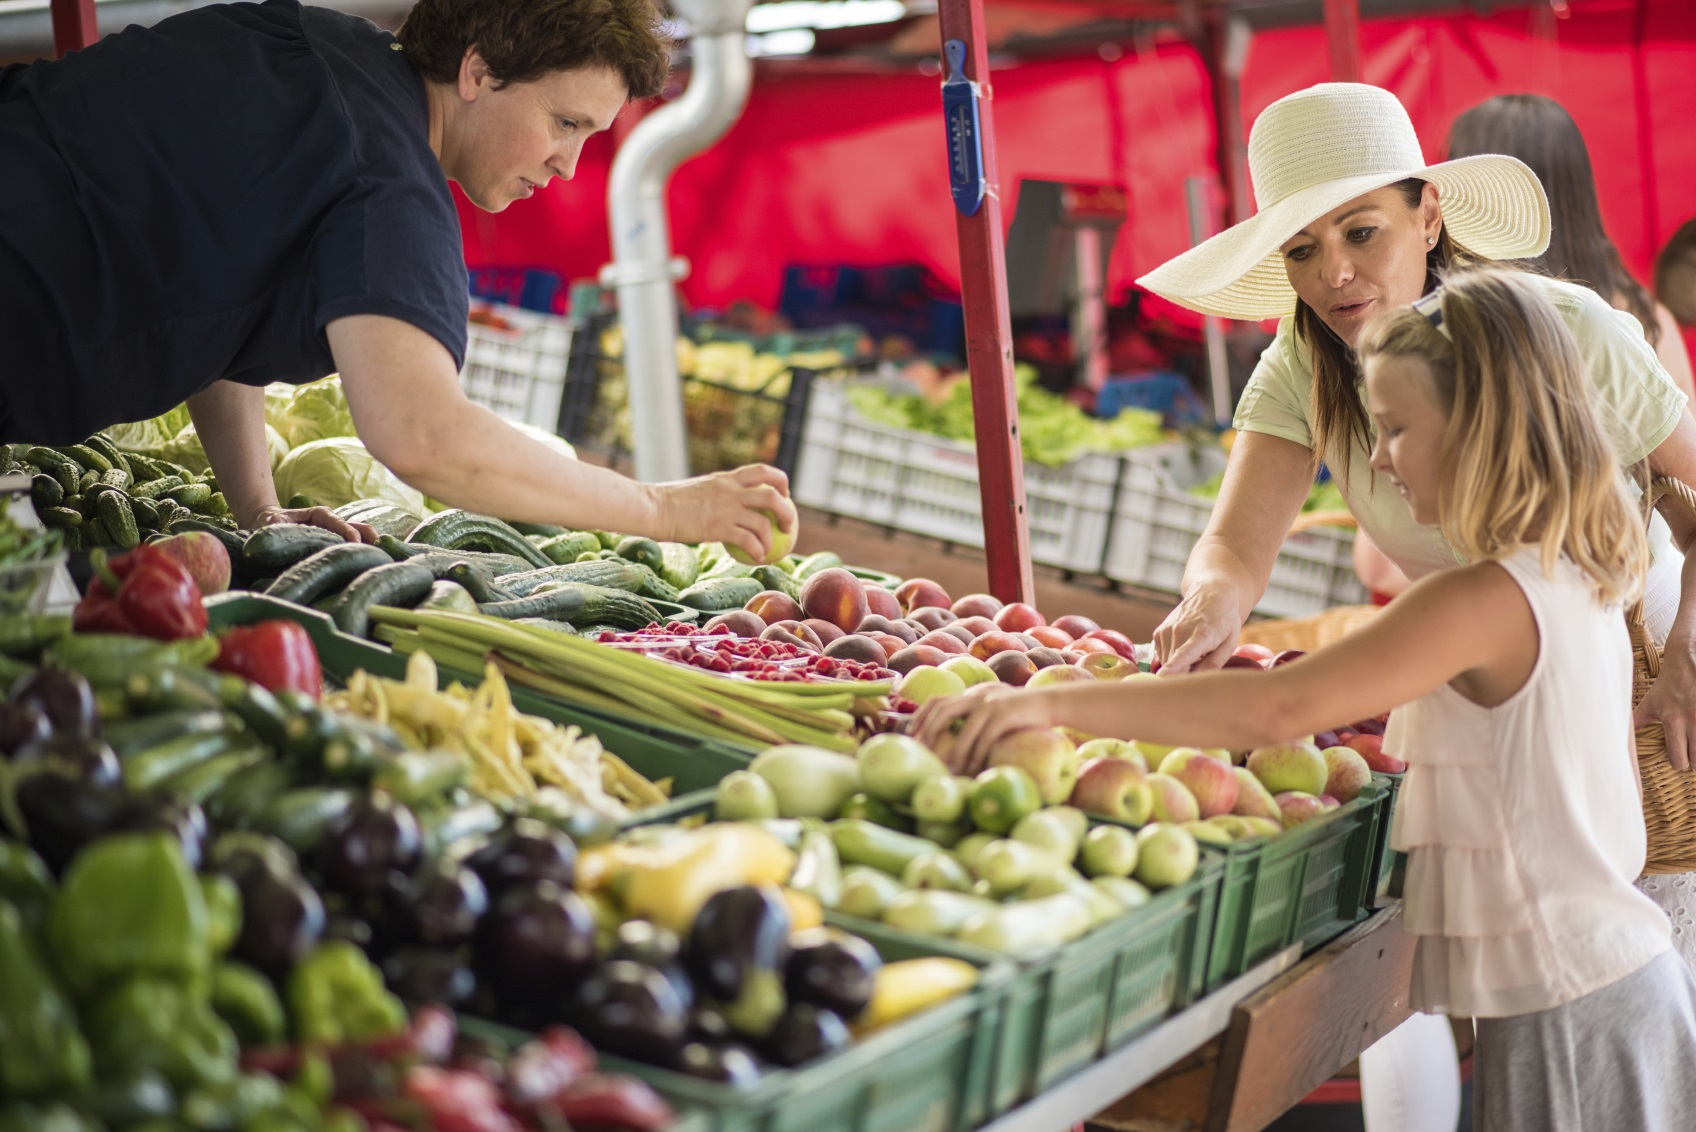 4 Tips for Getting the Most out of a Farmer's Market